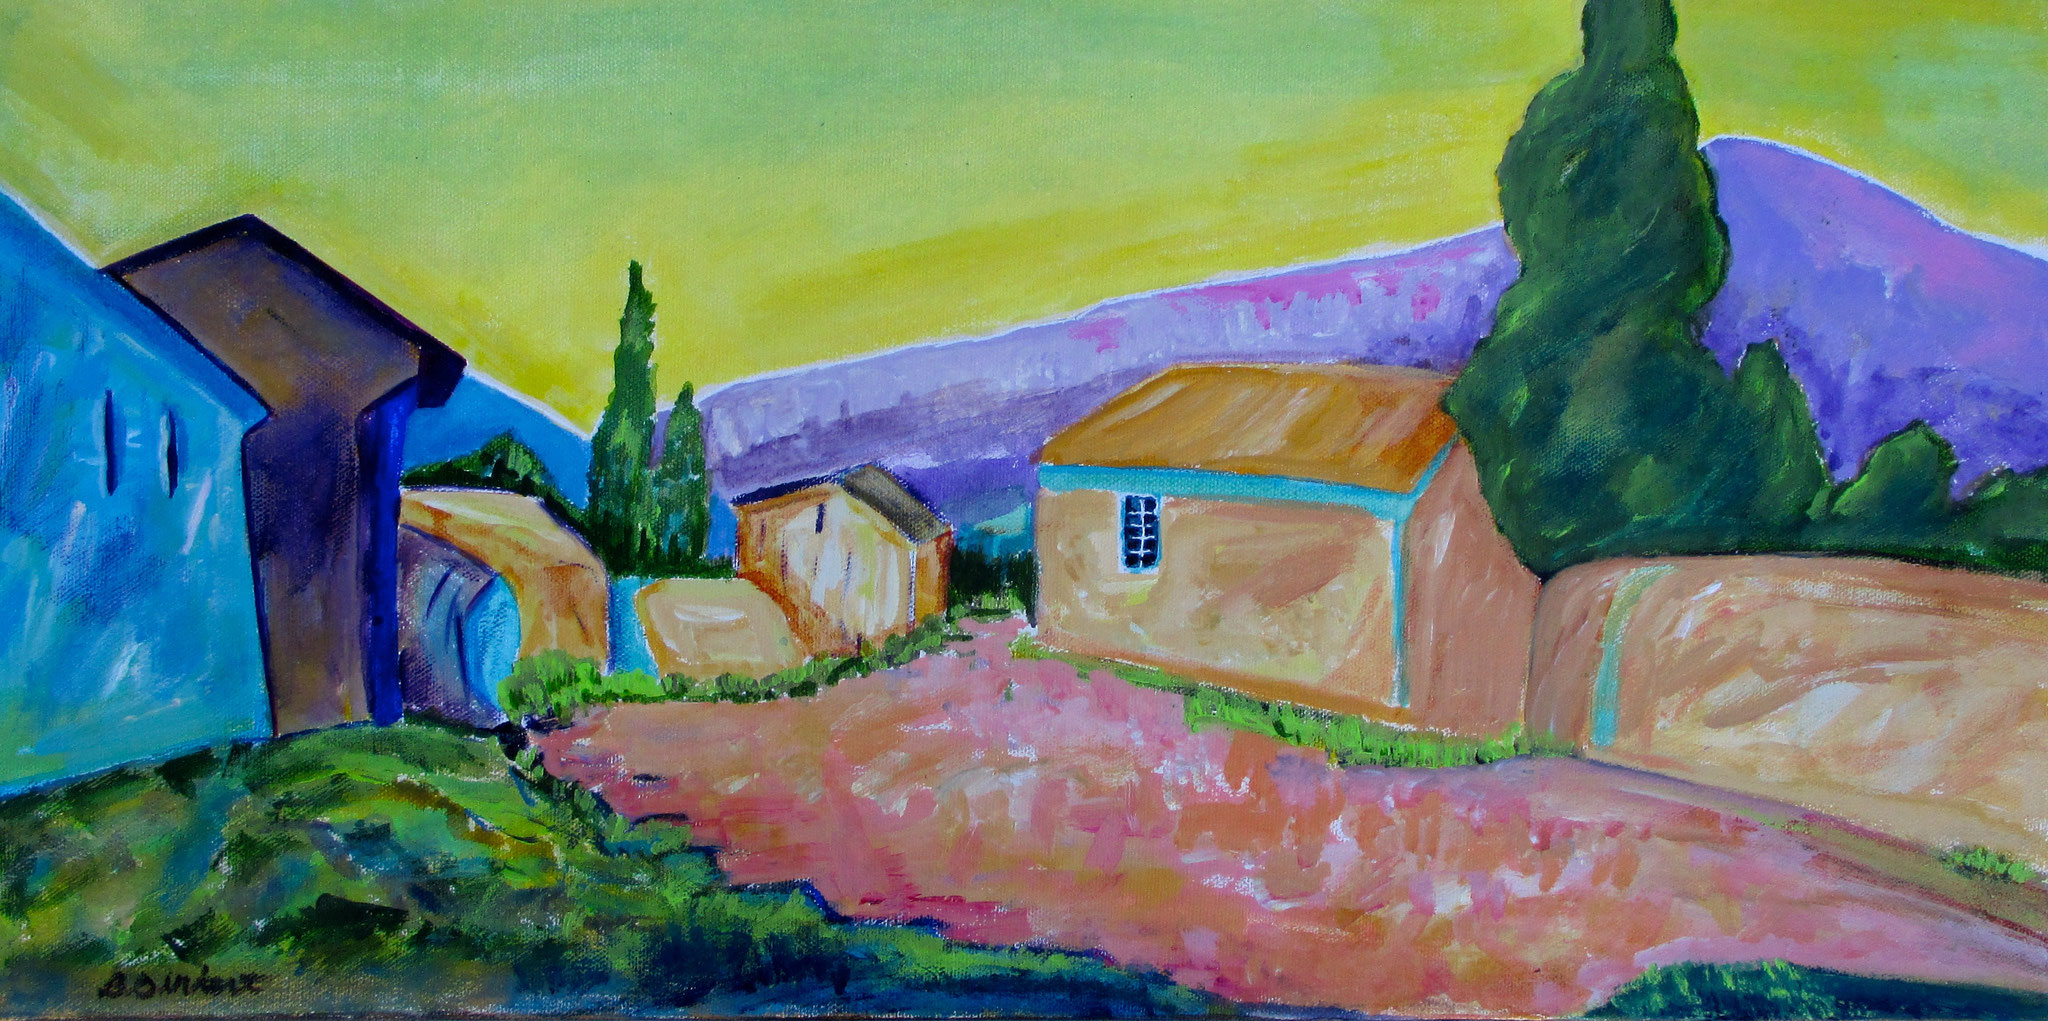 Belle Provence, oil on canvas, 24 x 12